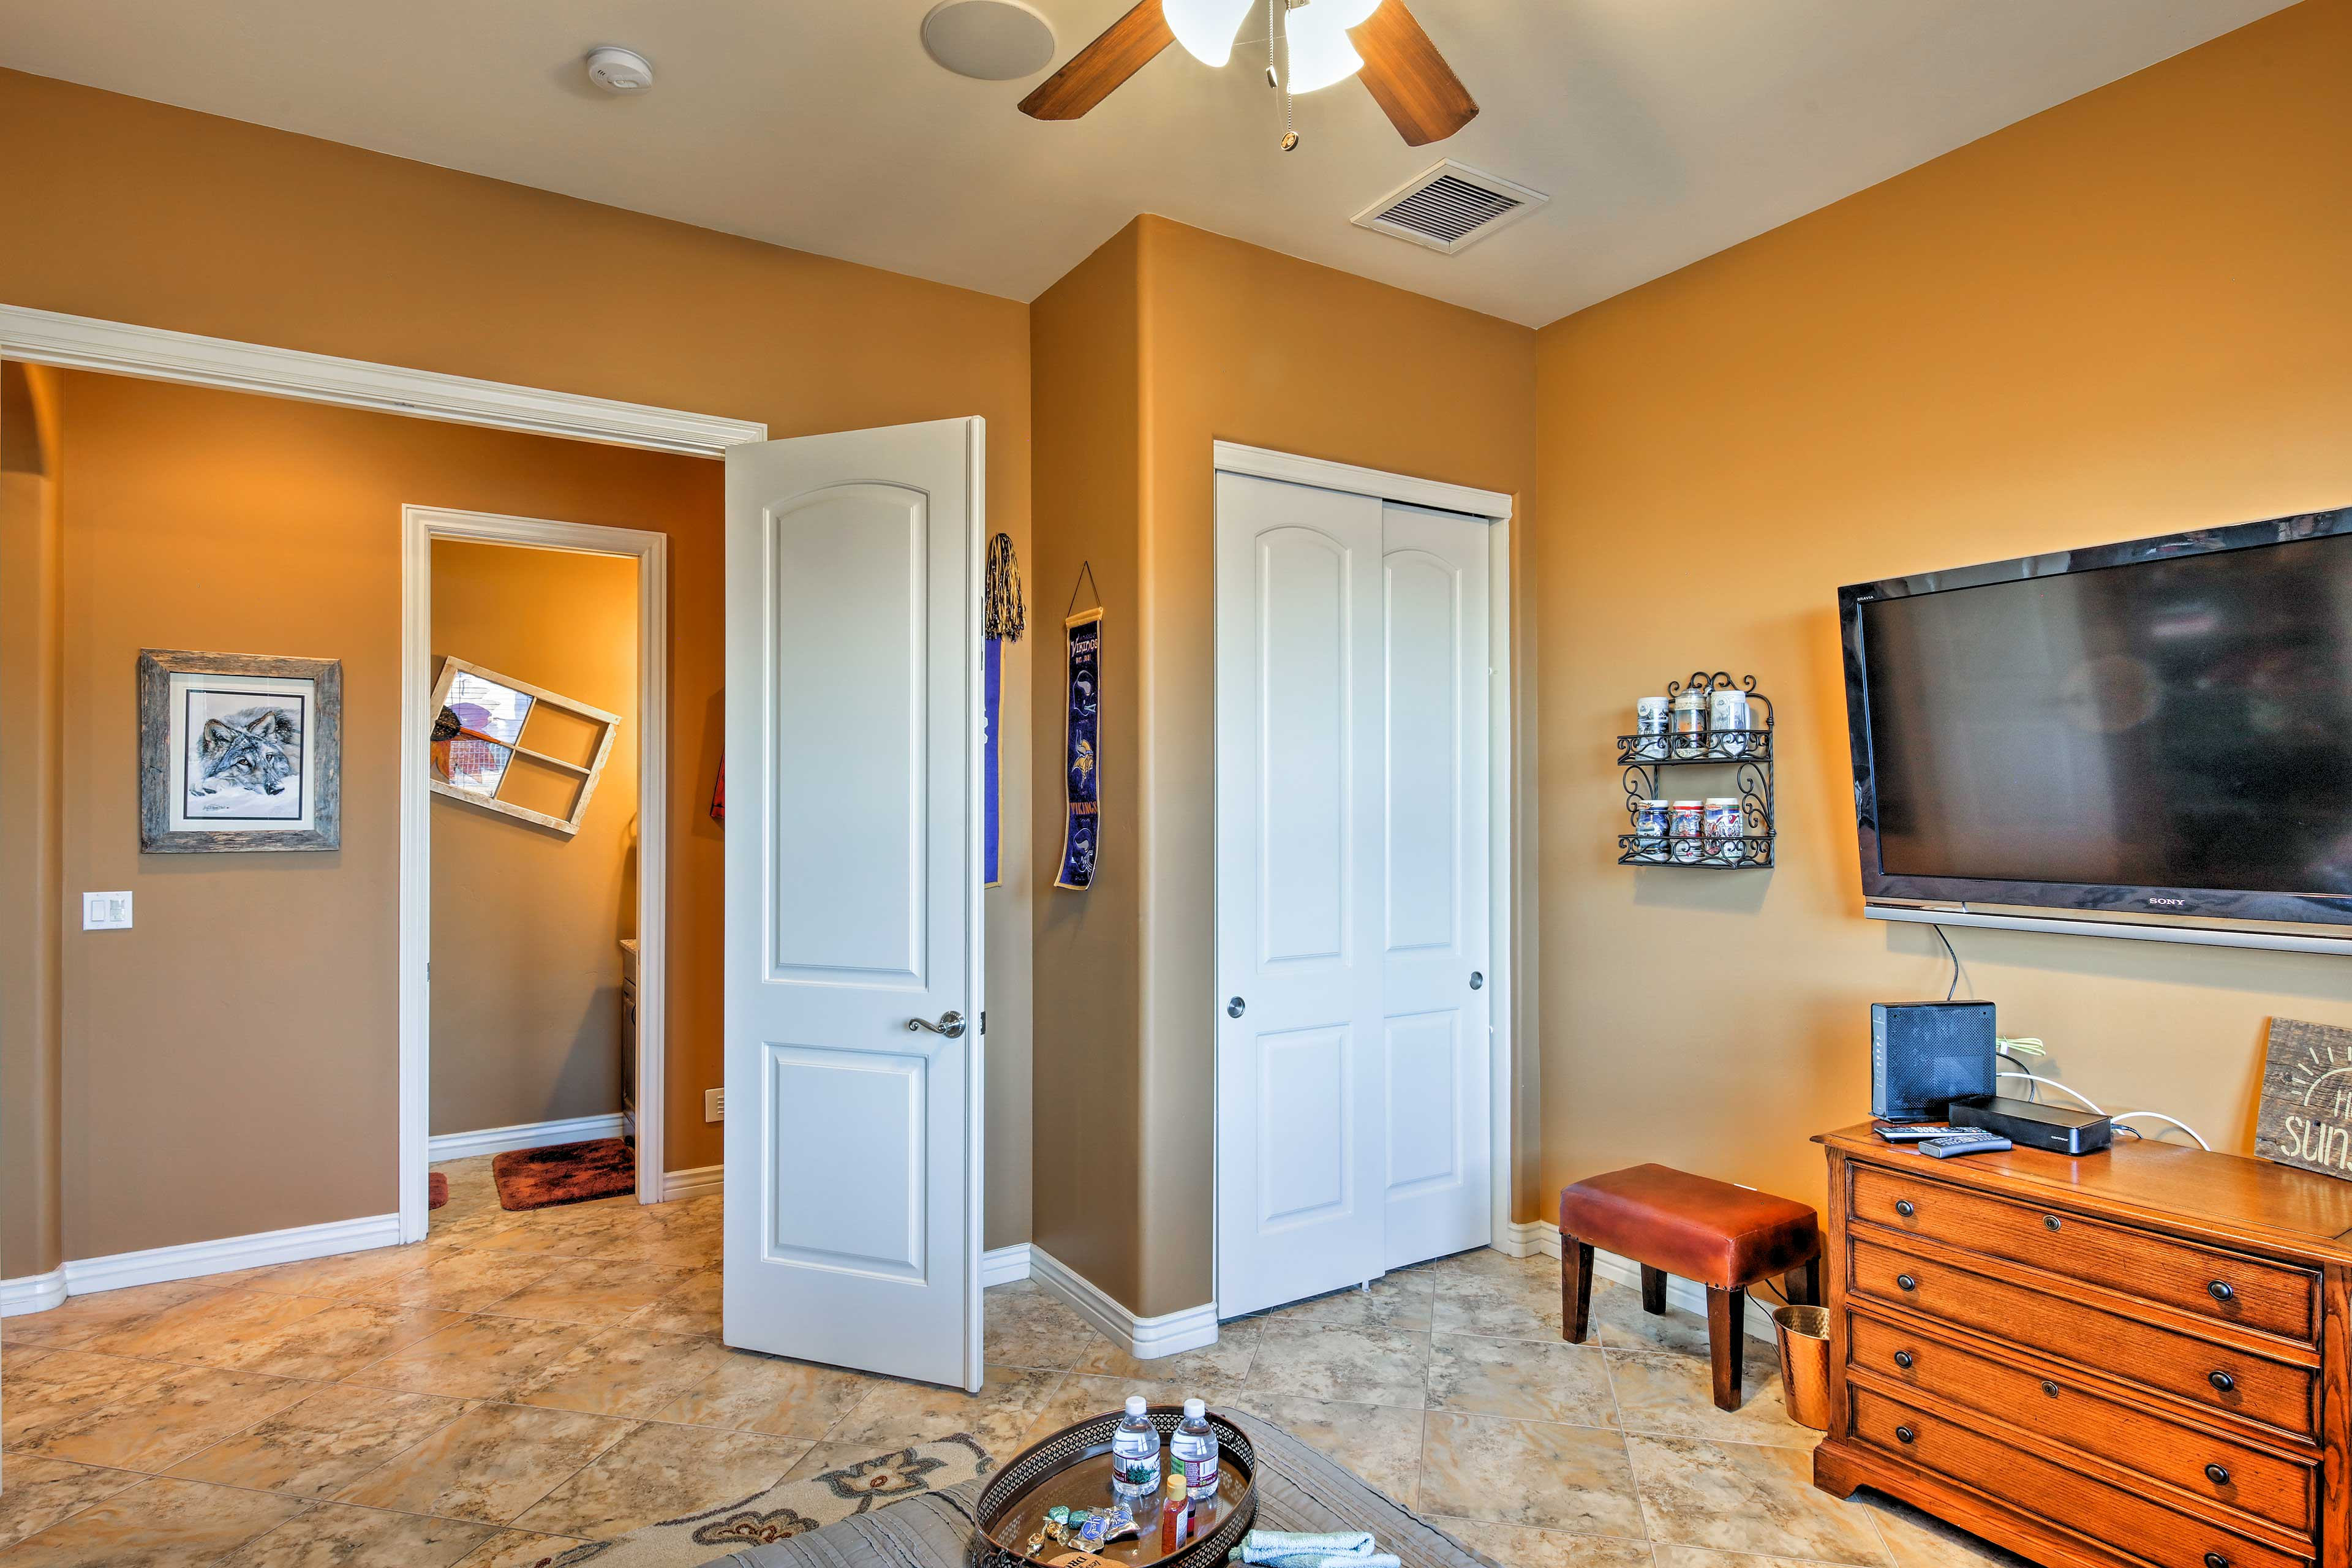 The bedroom boasts a large closet and flat-screen TV.